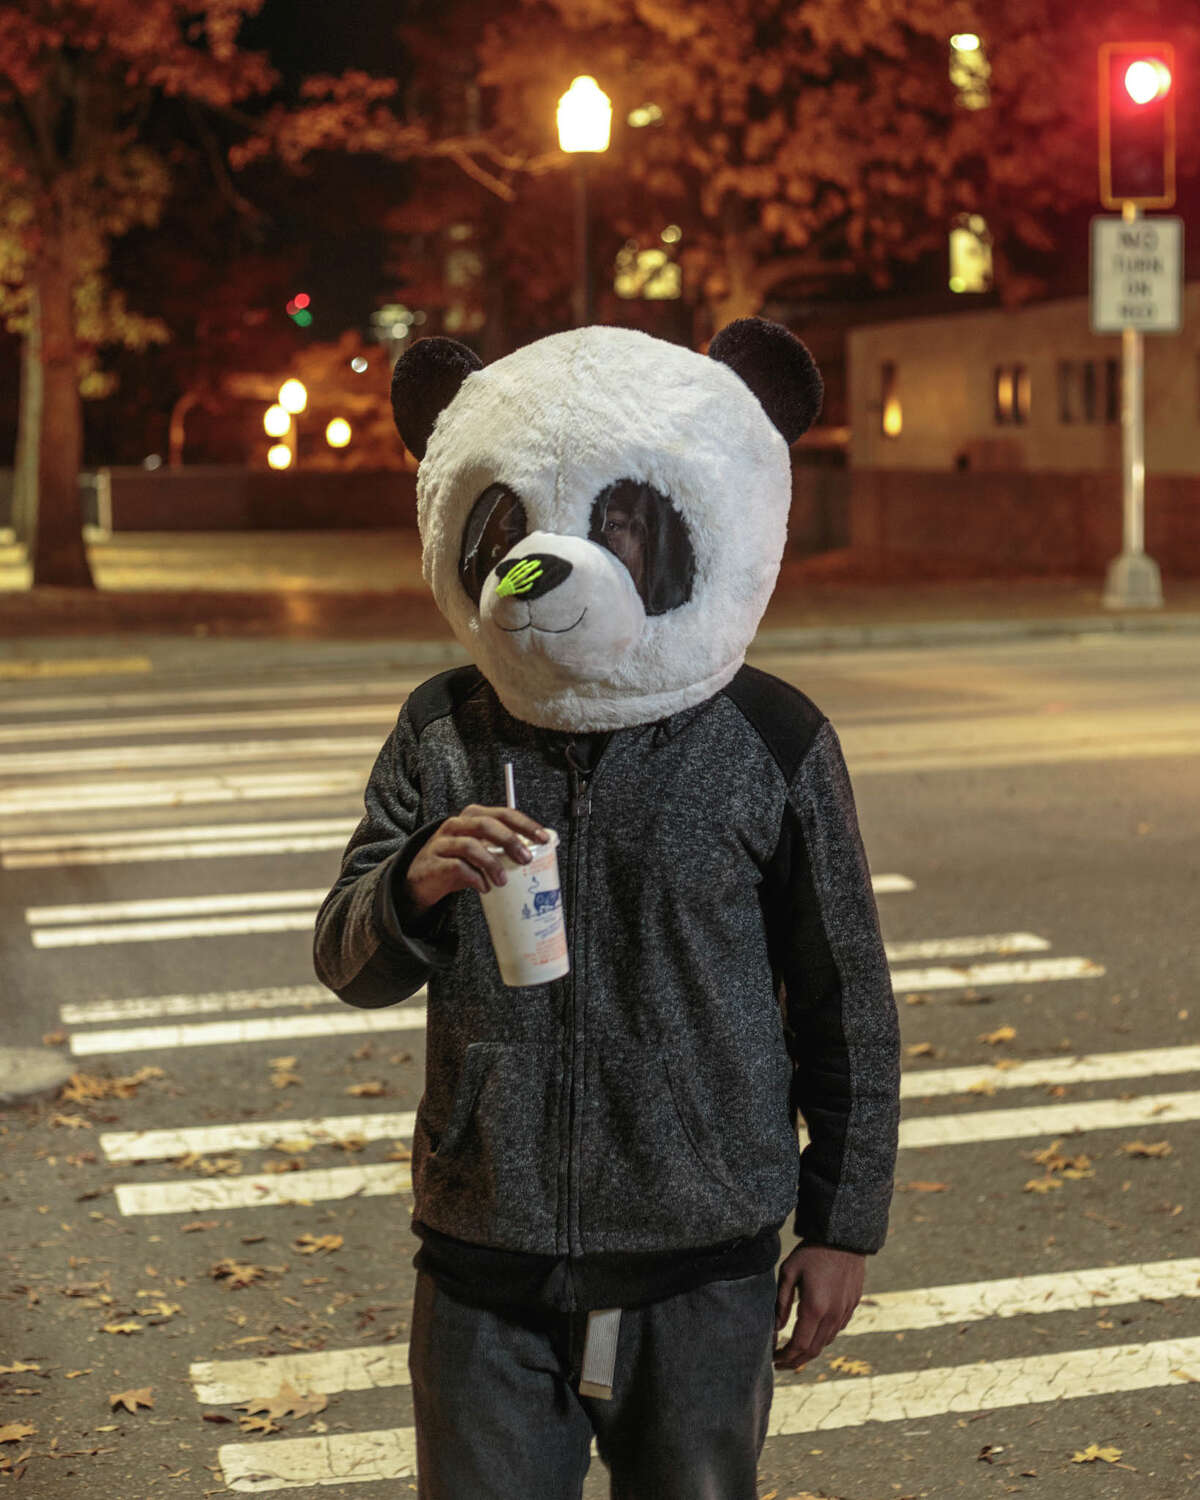 Zac Johnson wears a panda head on Halloween in Capitol Hill on Tuesday, Oct. 31, 2017.